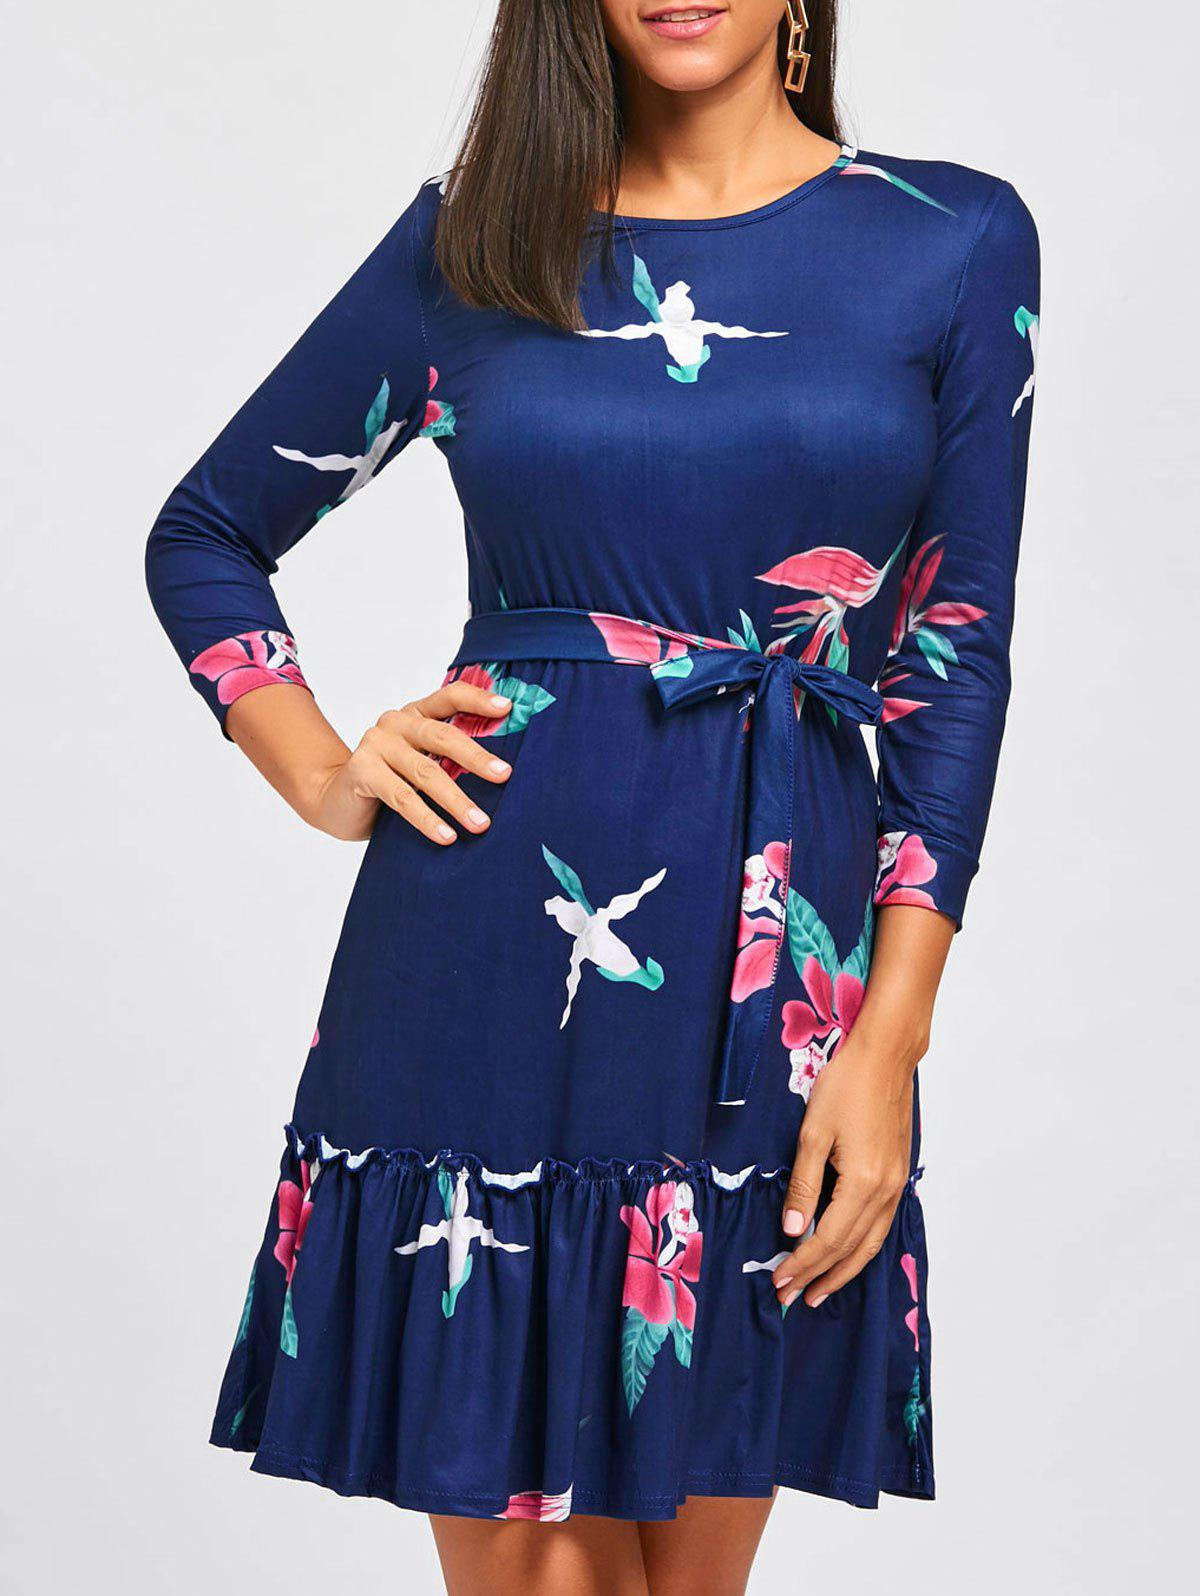 Casual Flounce Floral Dress - DEEP BLUE XL